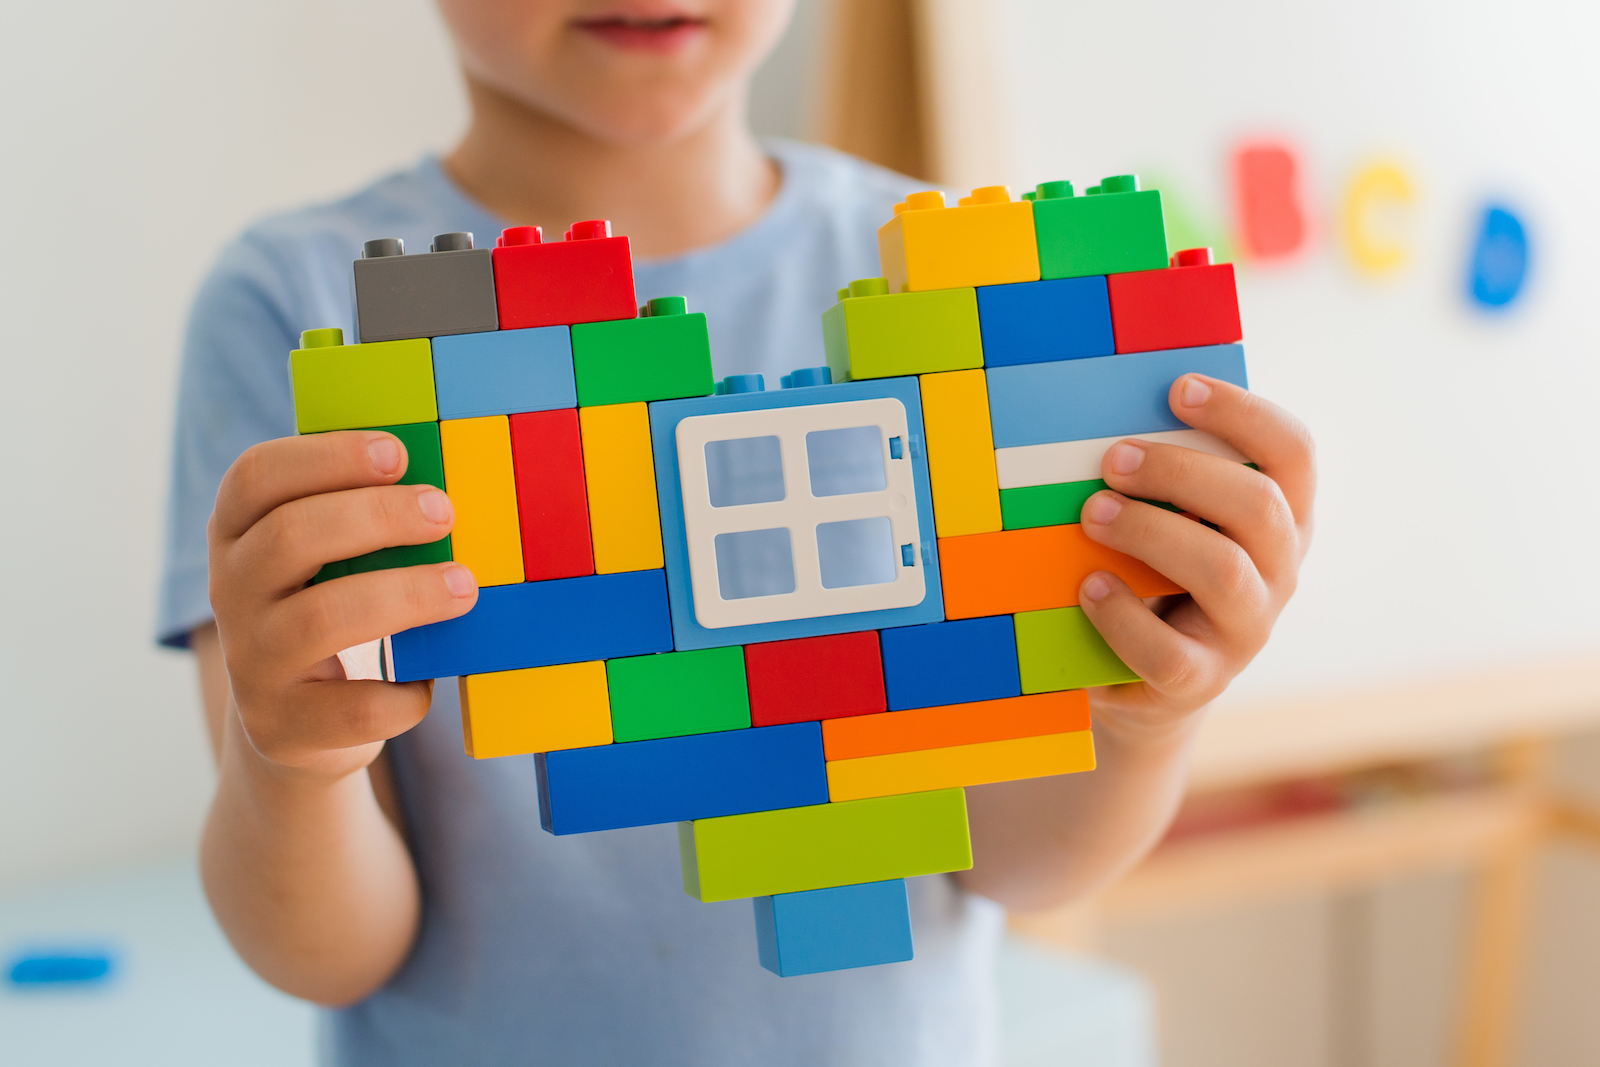 Play Therapy  - What it is, how it works and where to find a play therapist near me  - child development